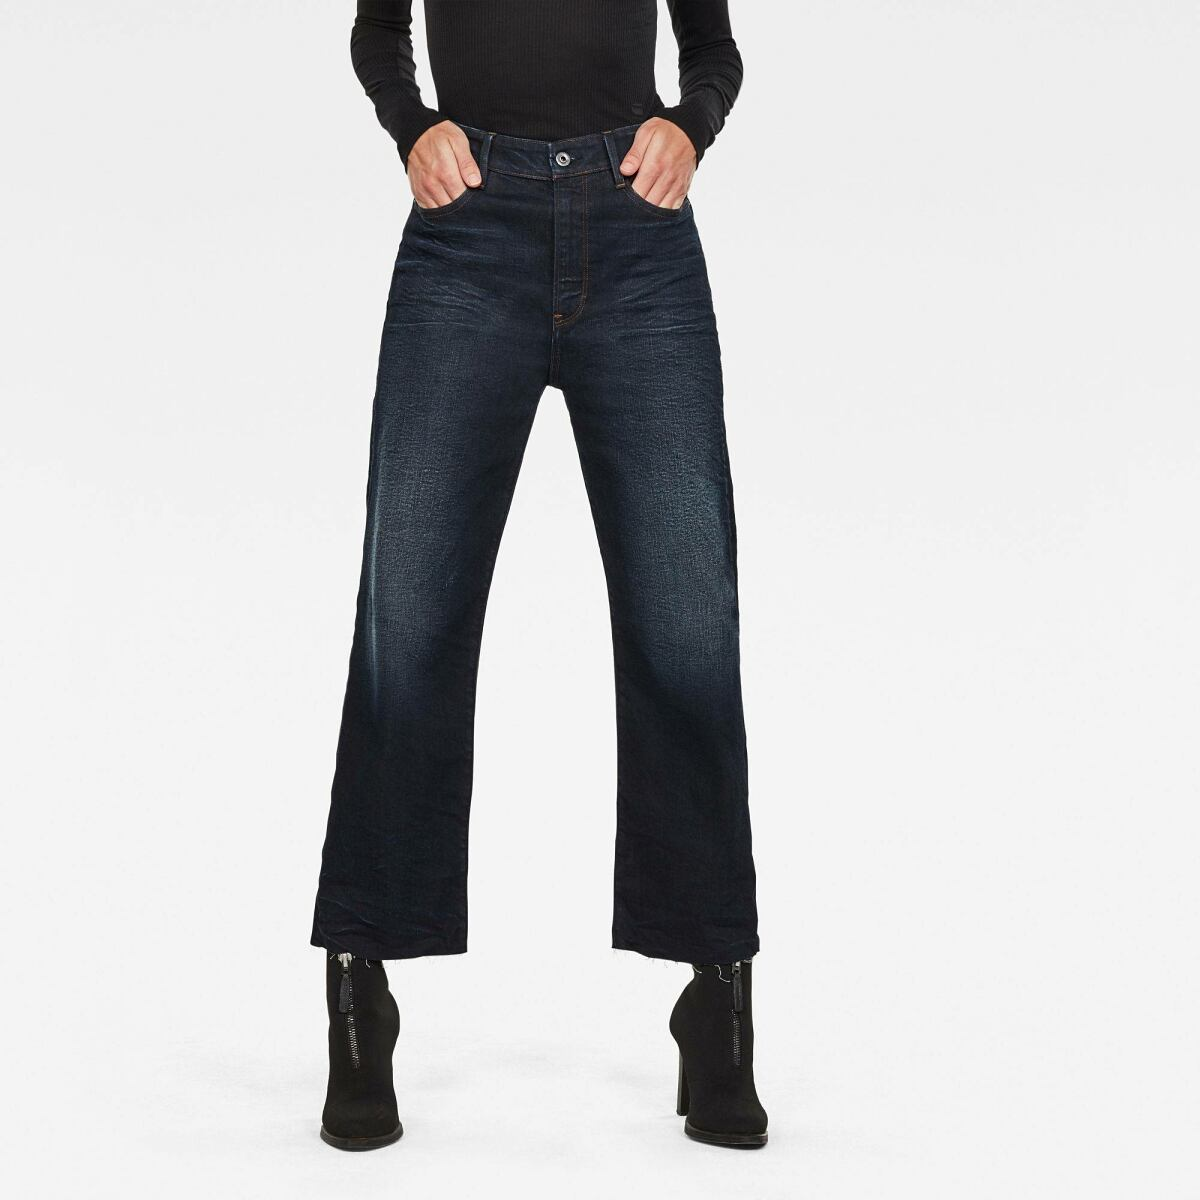 Dark blue Woman Jeans Tedie Ultra High Straight RP Ankle Jeans G-Star WOMEN